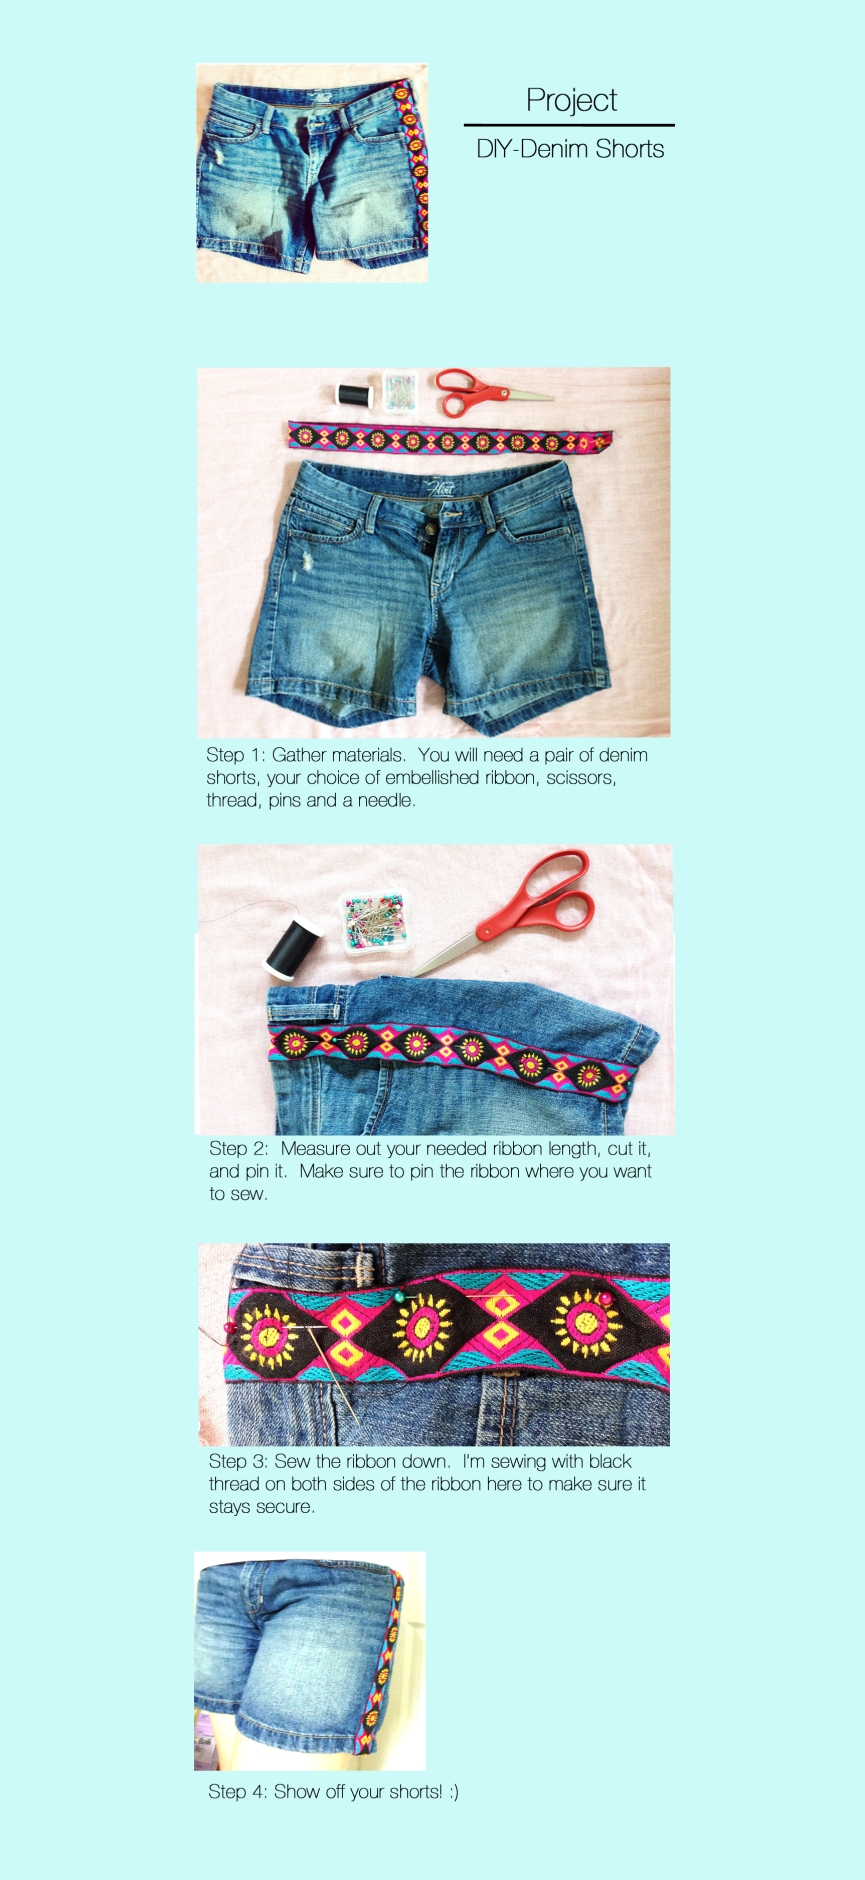 Project- DIY Denim Shorts